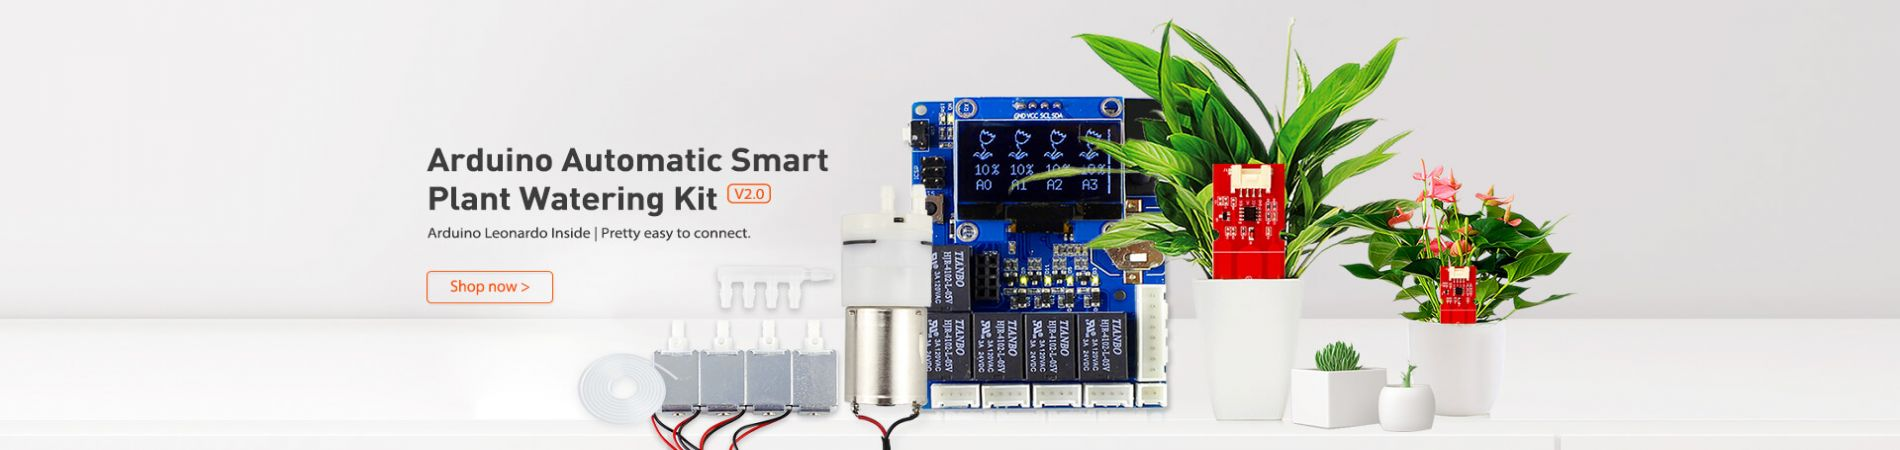 /arduino-automatic-smart-plant-watering-kit.html